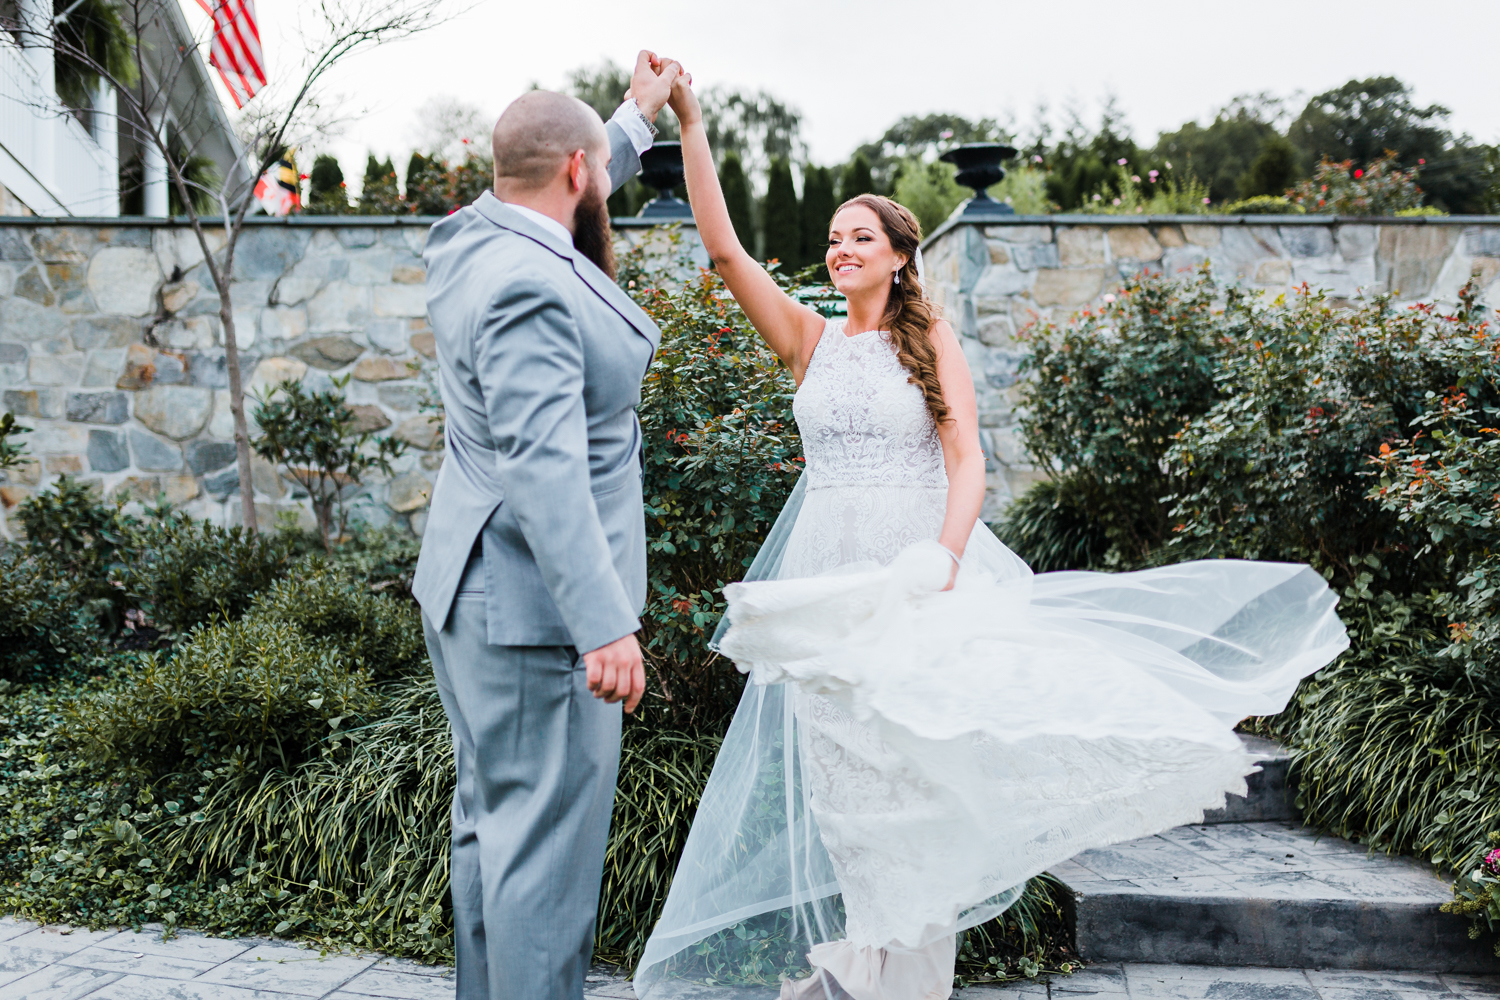 bride and groom dancing outside - DMV wedding photography and videography / cinematography